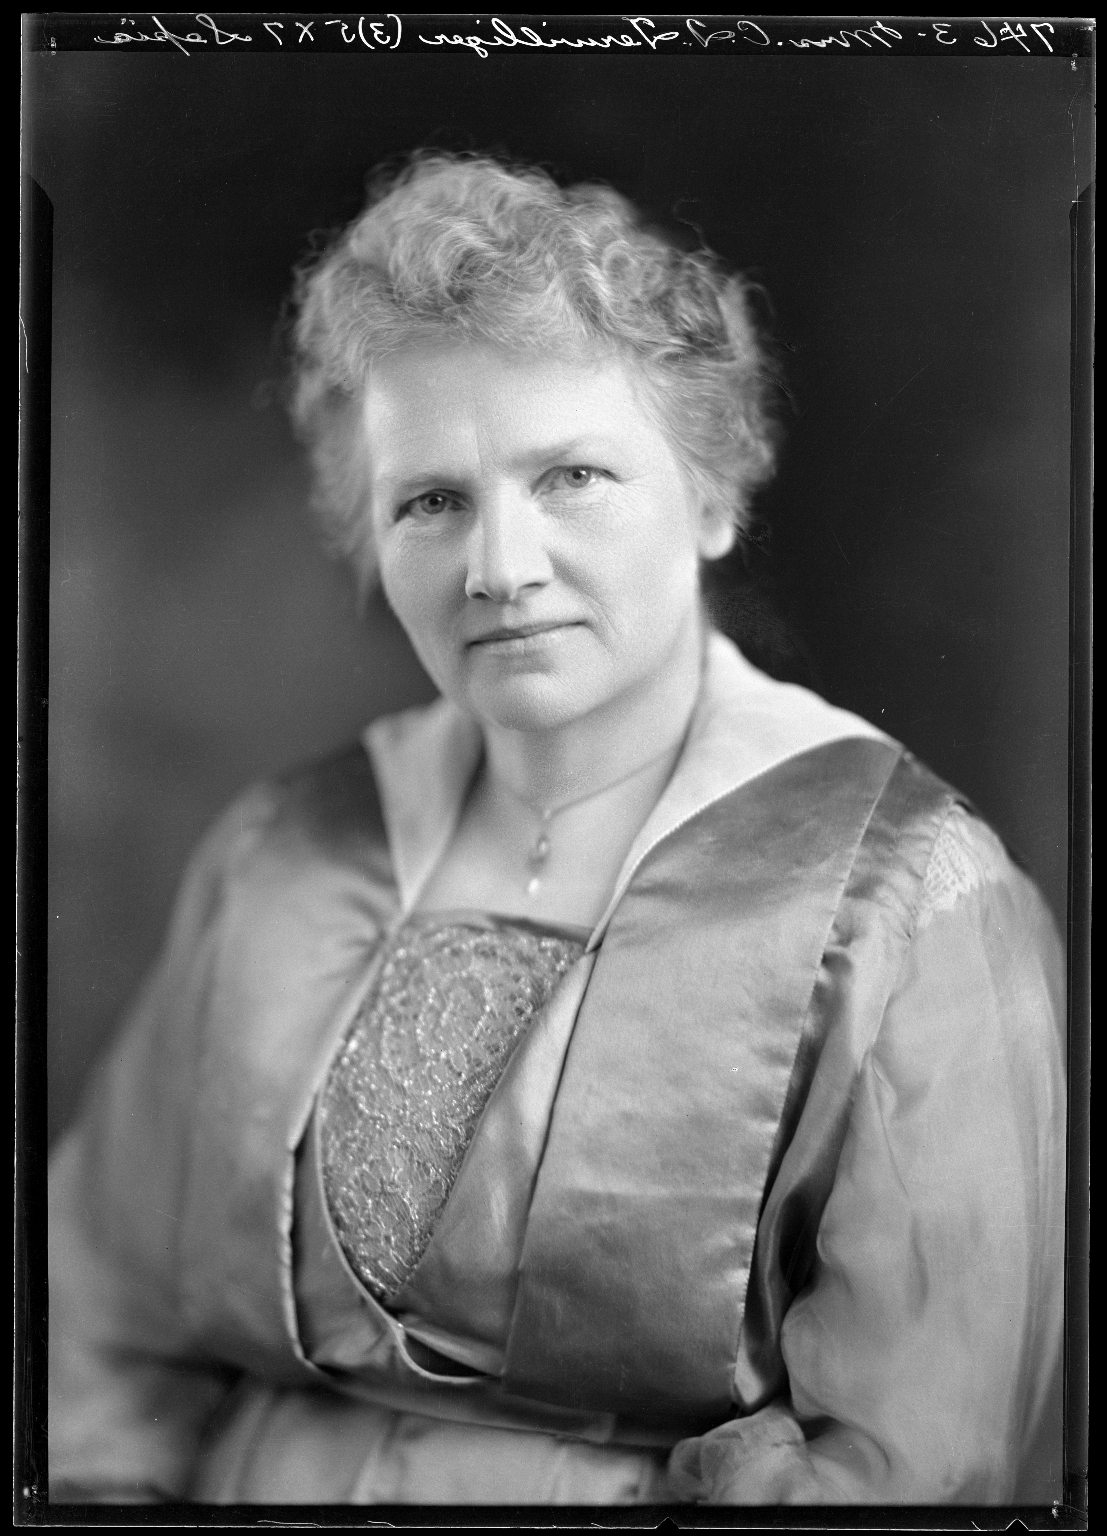 Portrait of Mrs. C. I. Terwilliger